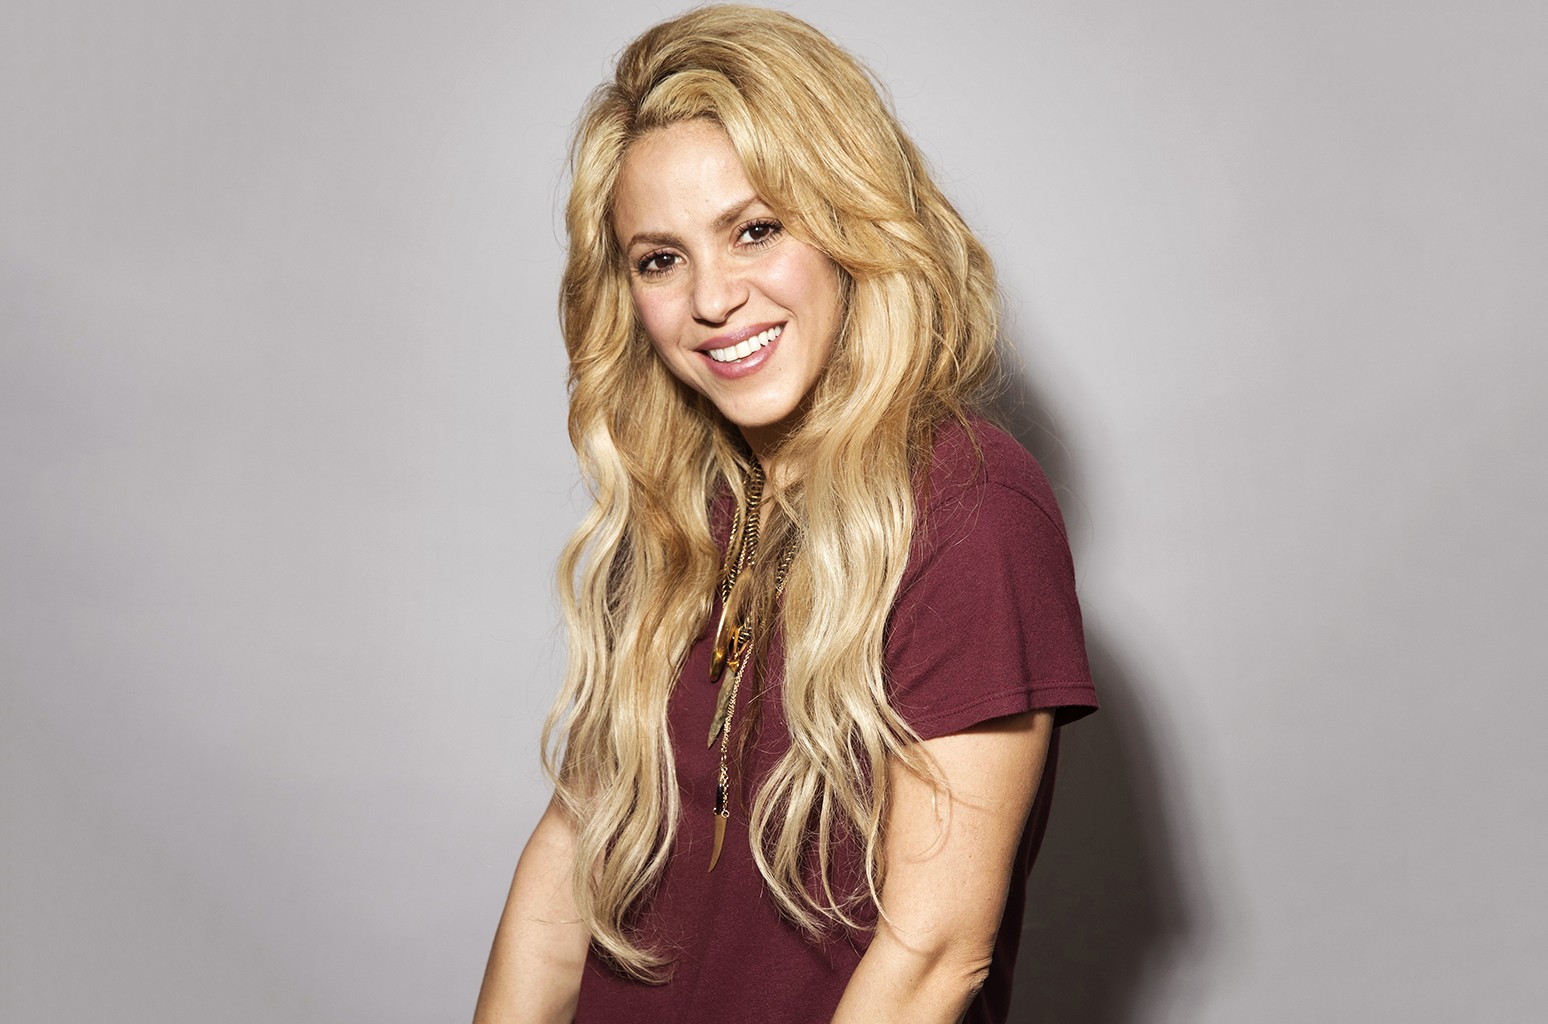 Shakira photographed on May 16, 2017.